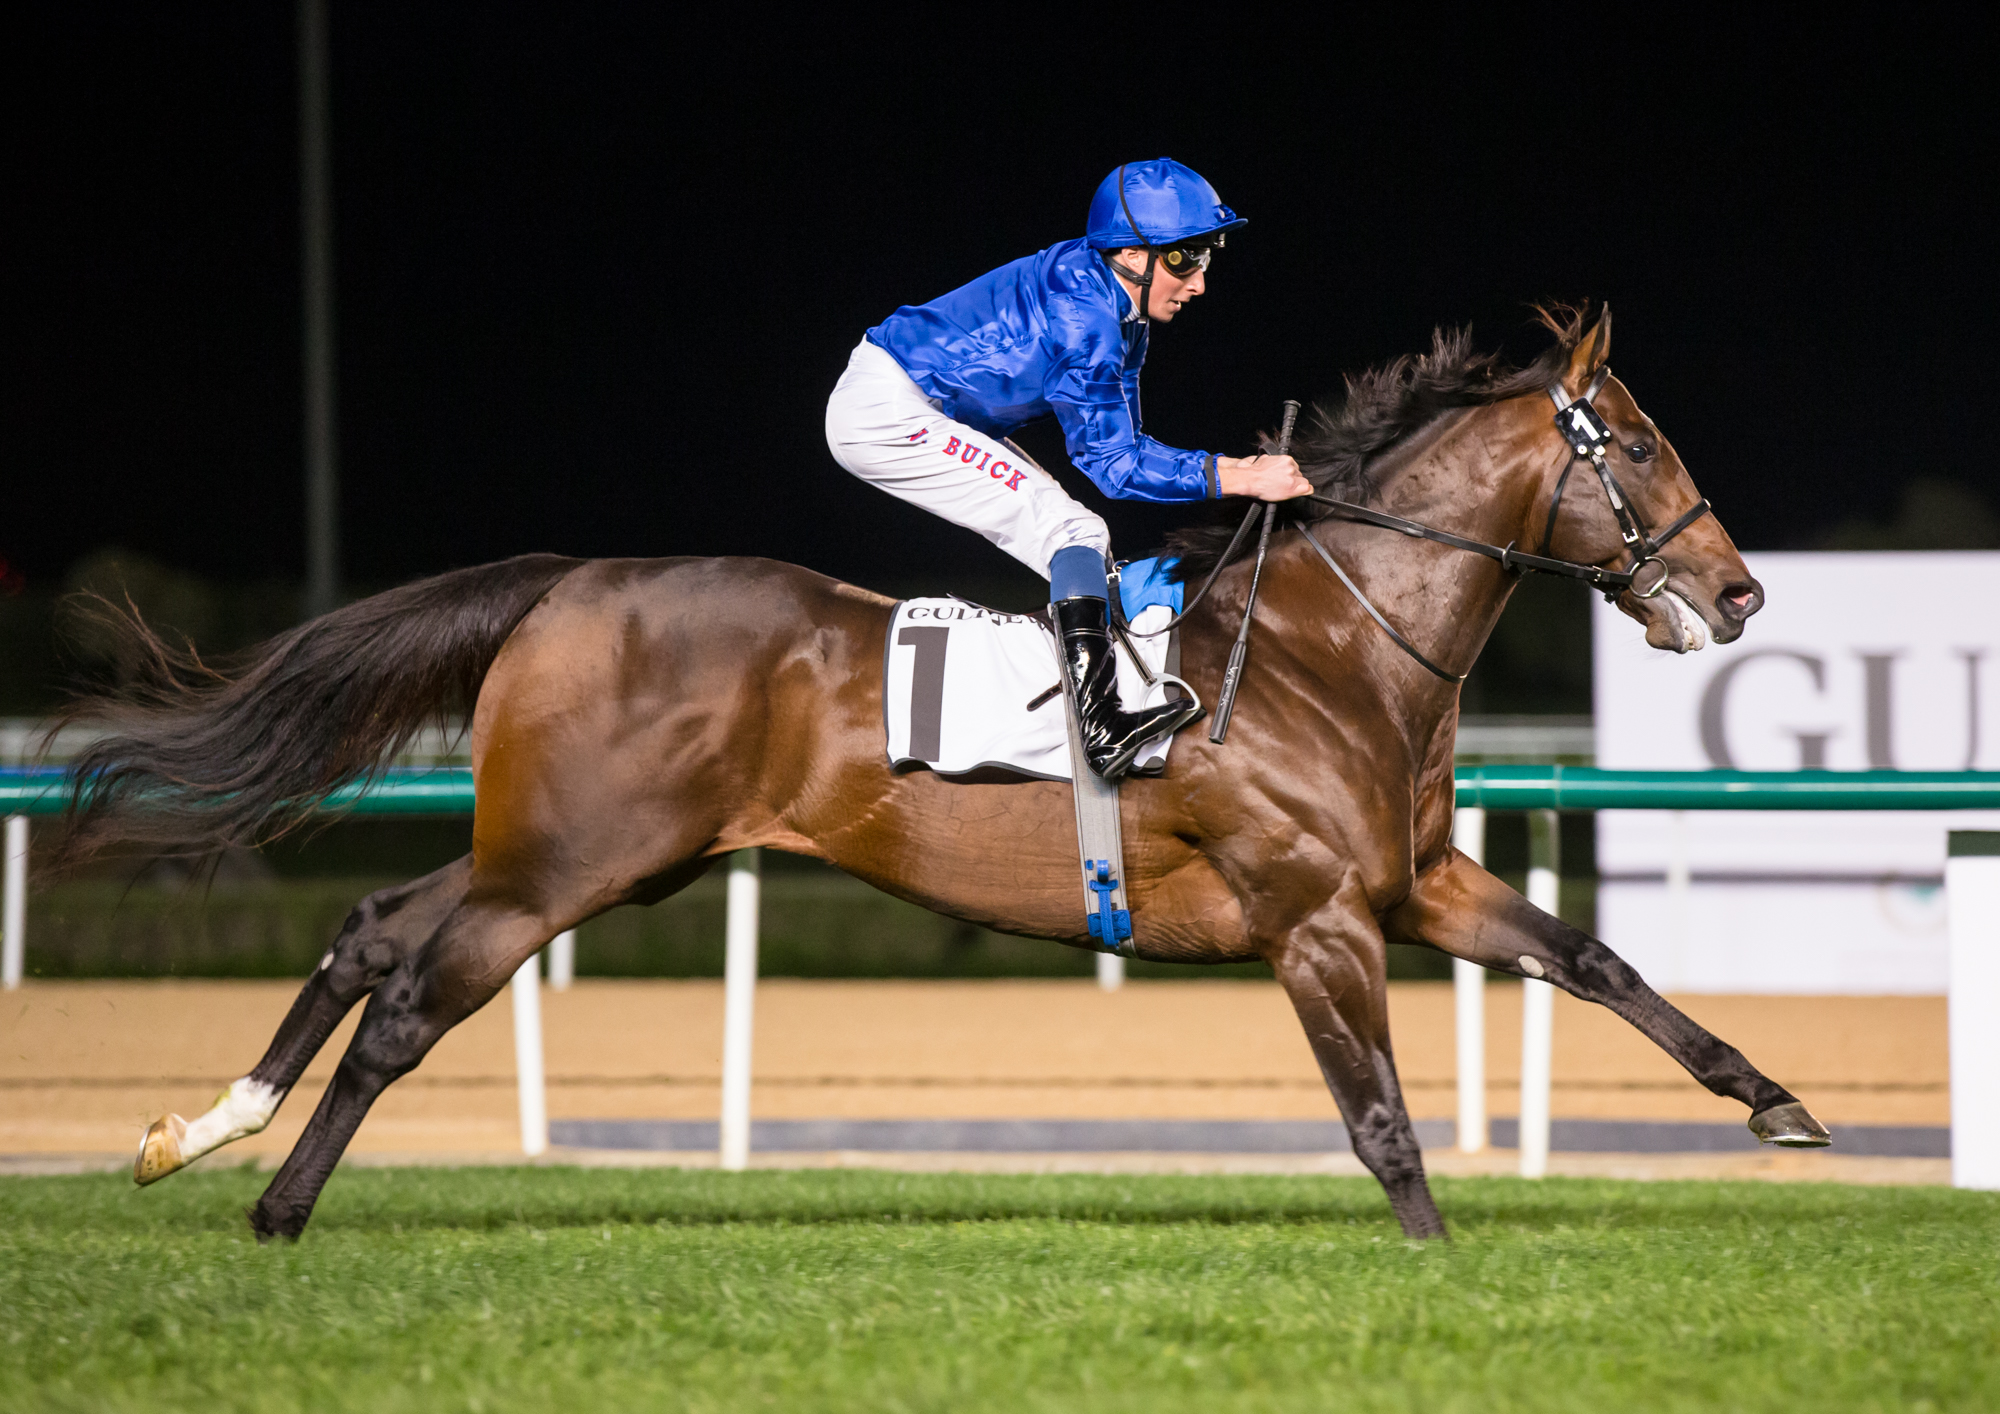 MEYDAN SPRINT (GR2) - Blue Point, un sprint en solitaire